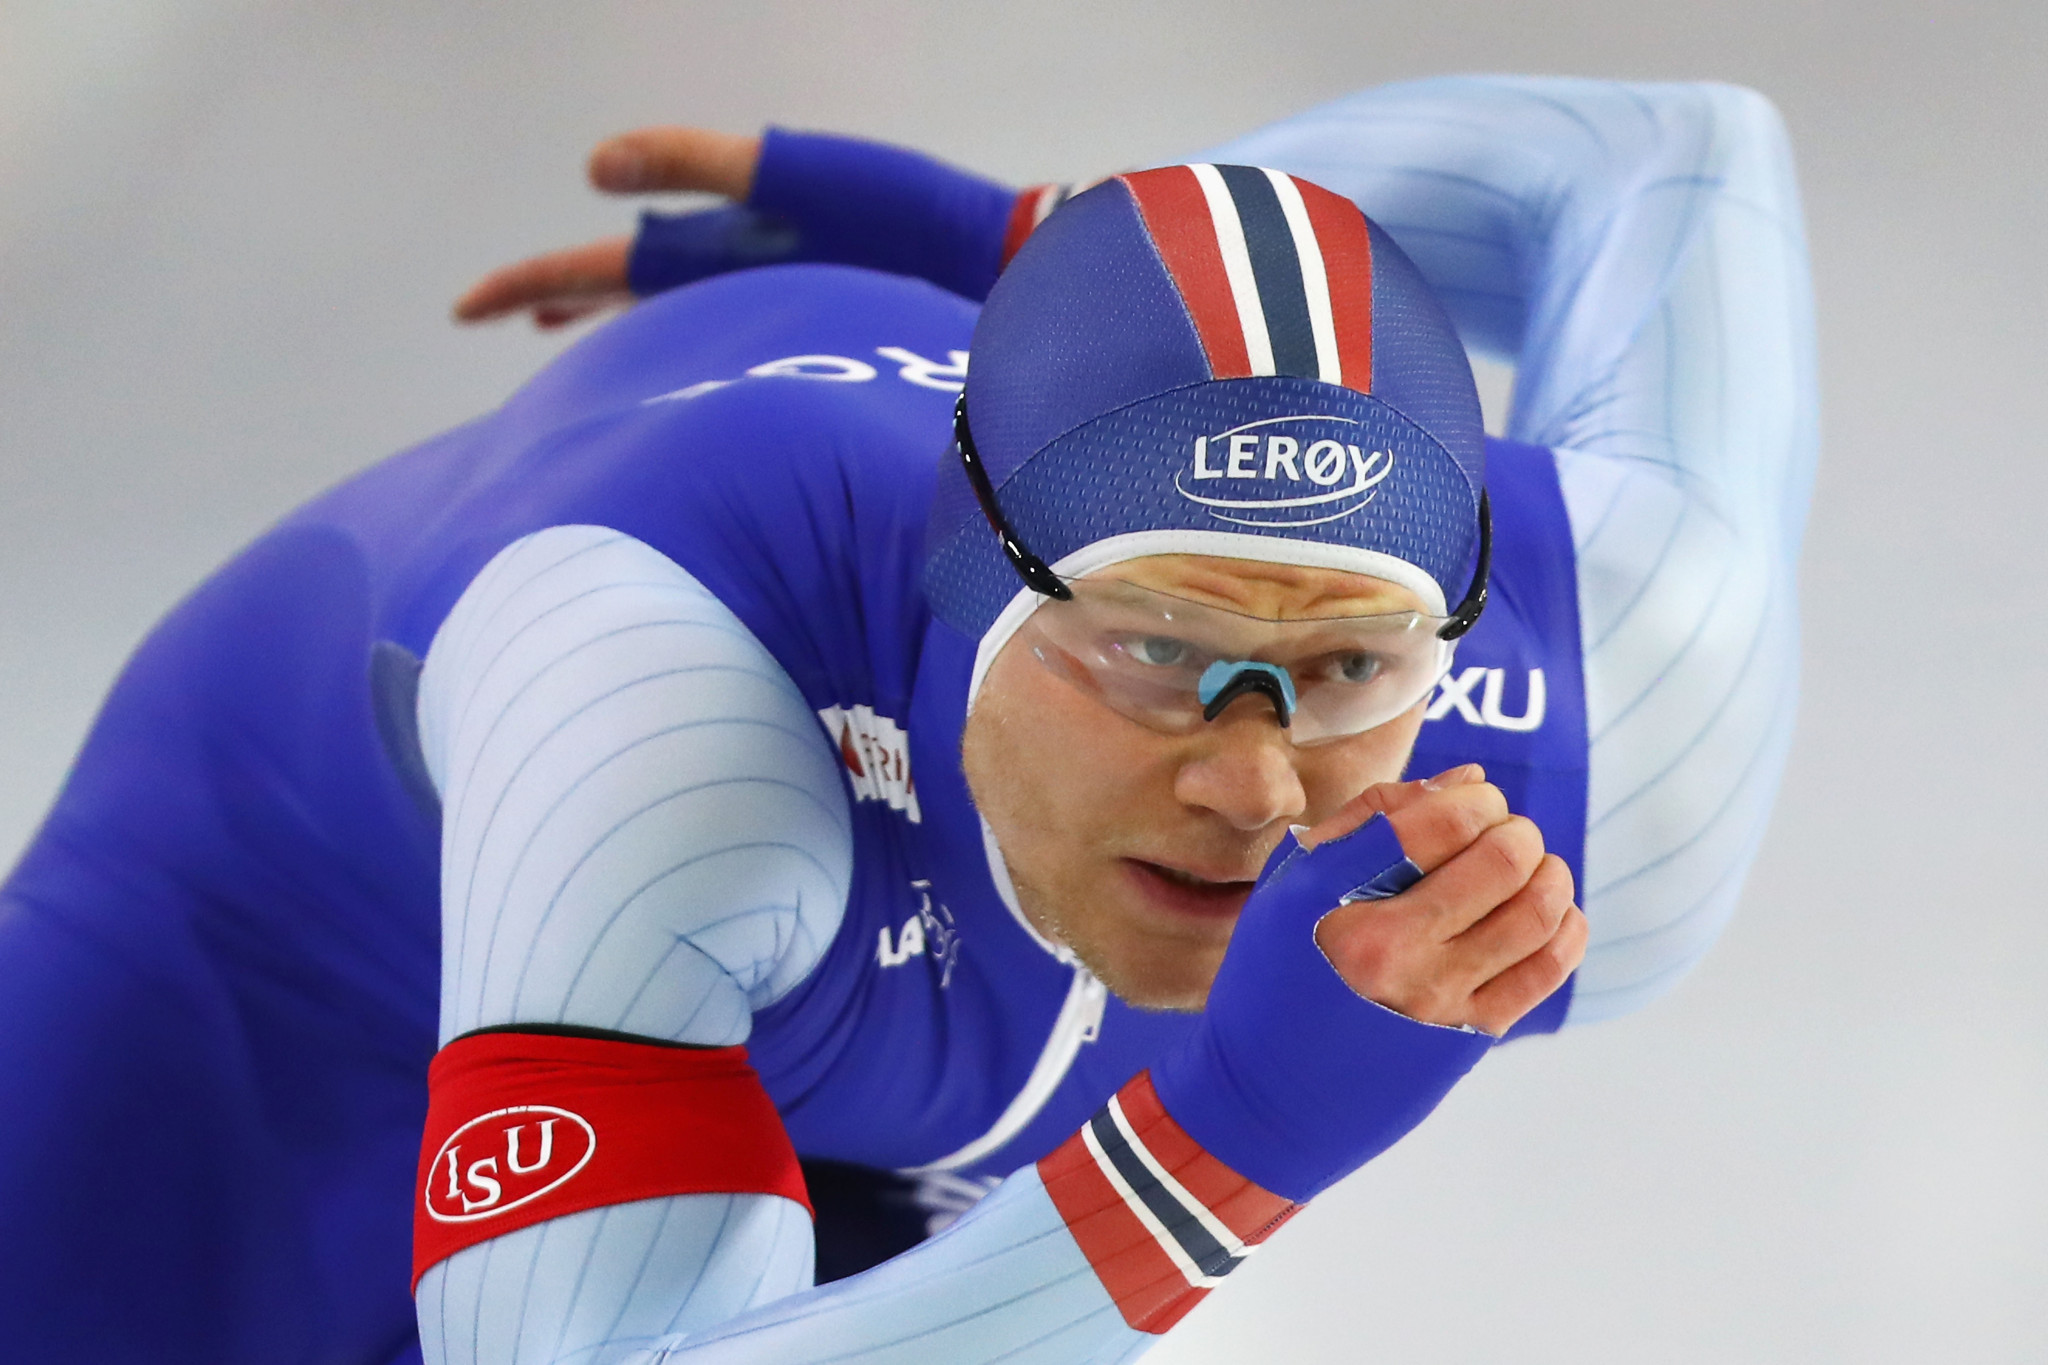 Olympic gold medallist Lorentzen aiming for return to form after difficult season